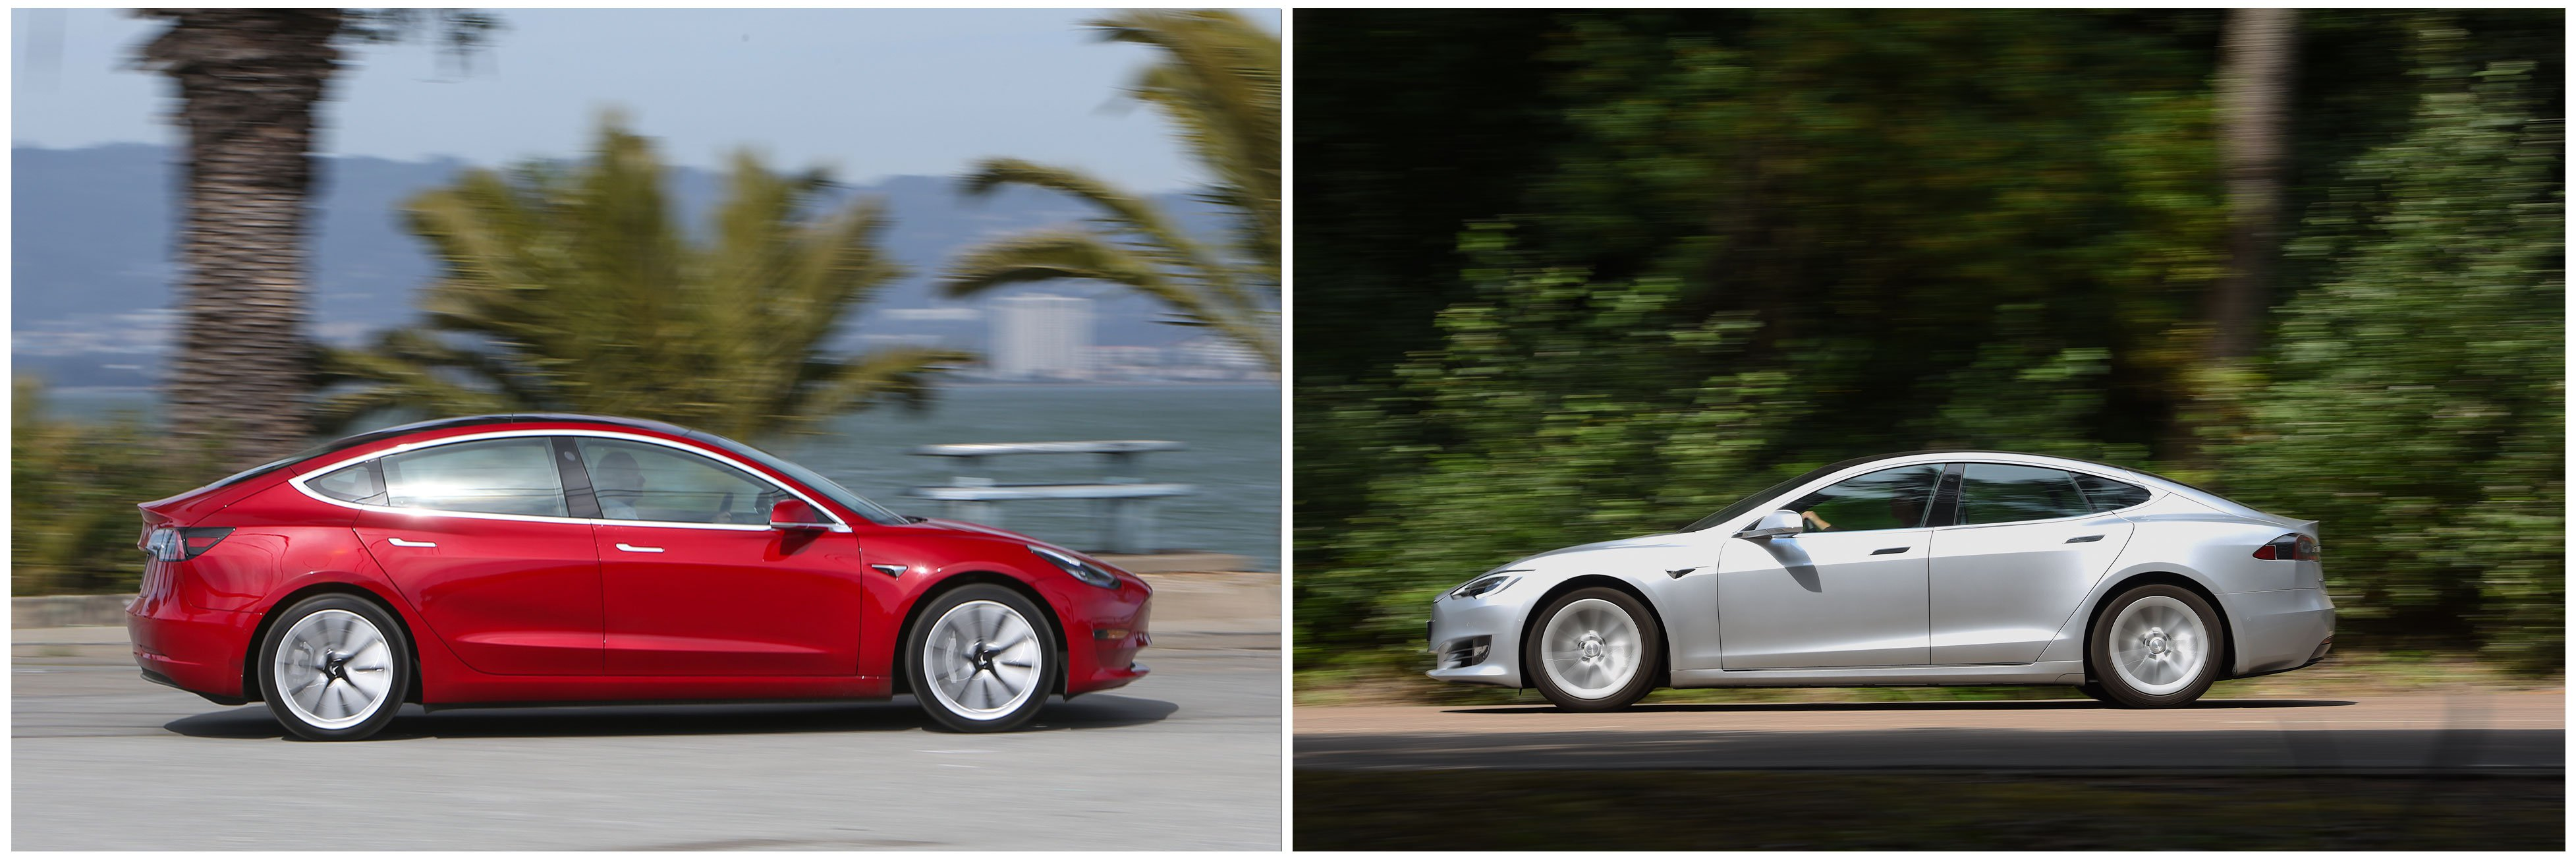 Tesla Model 3 and Tesla Model S side